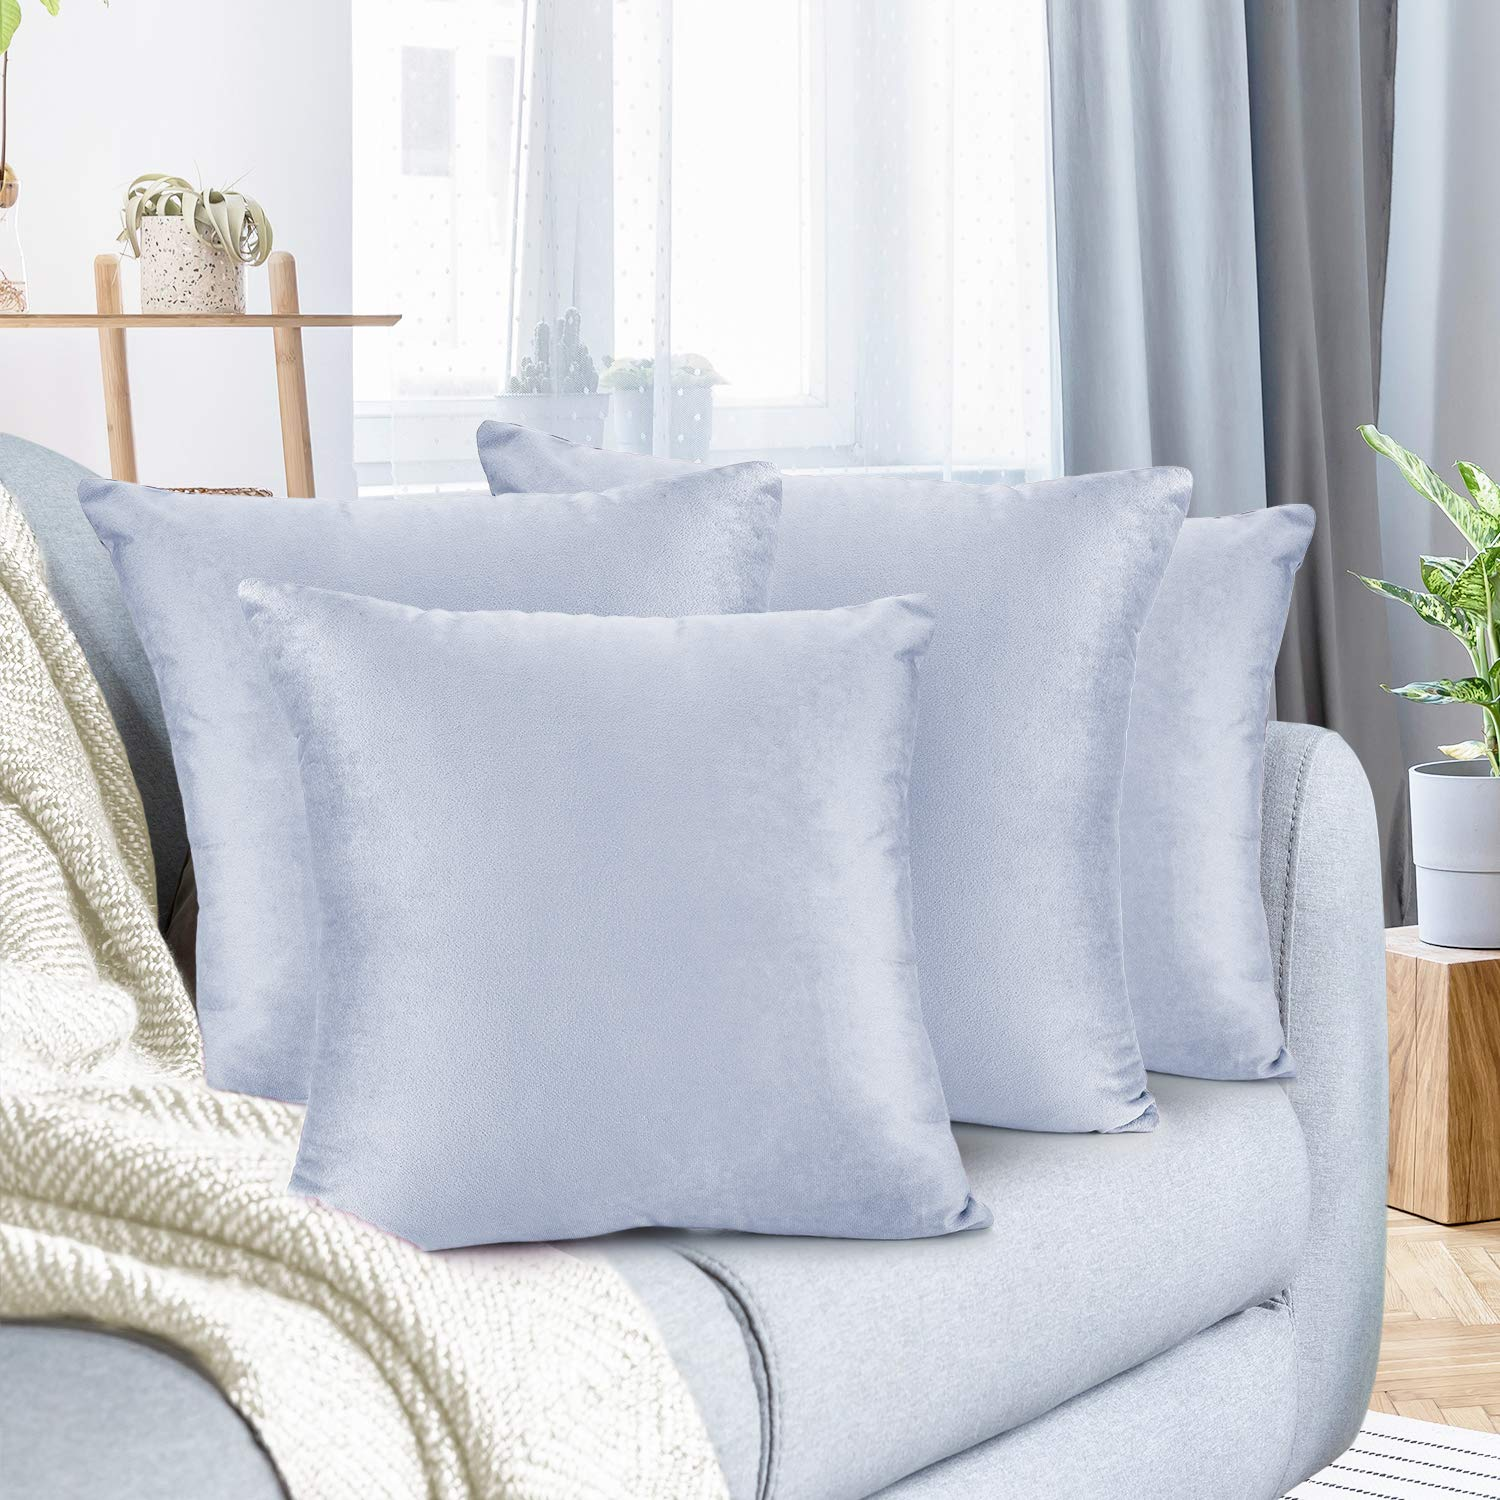 """Nestl Bedding Throw Pillow Cover 26"""" x 26"""" Soft Square Decorative Throw Pillow Covers Cozy Velvet Cushion Case for Sofa Couch Bedroom, Set of 4, Ice Blue"""